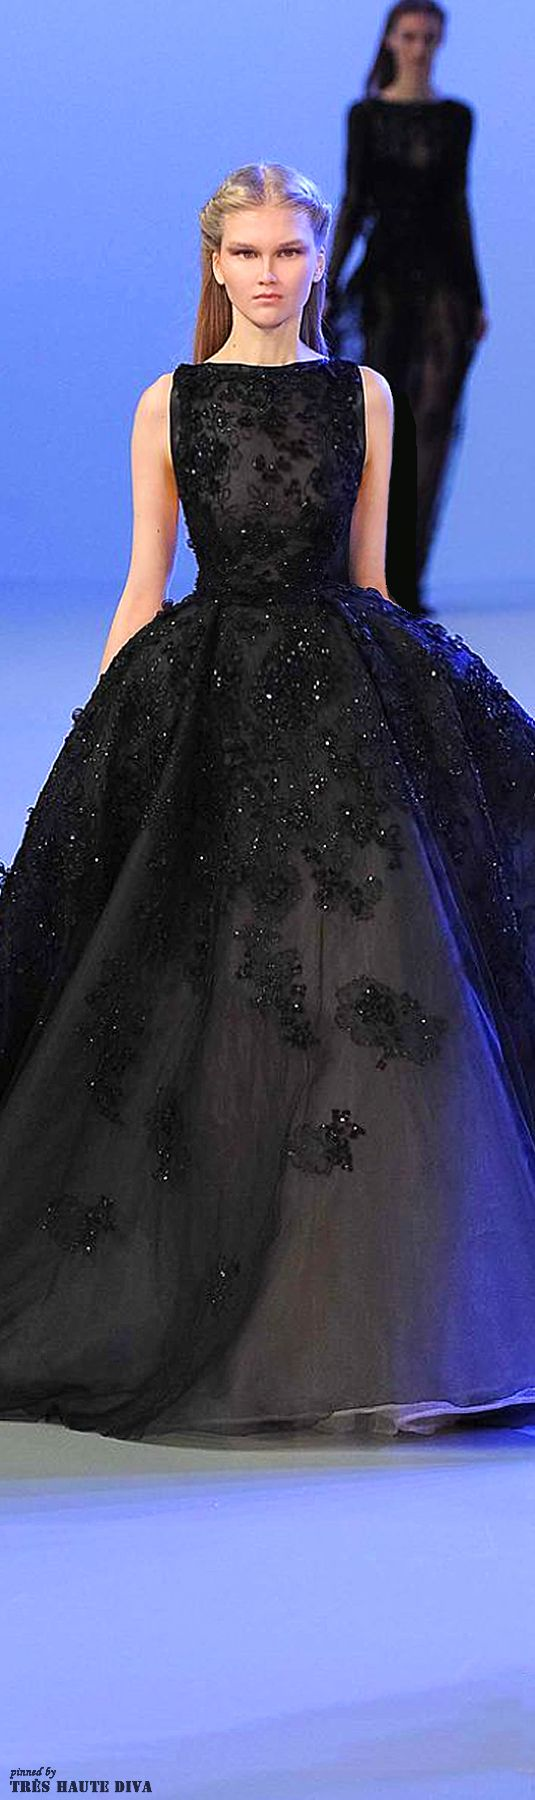 Elie Saab Spring 2014 Couture                                                                                                                                                      More